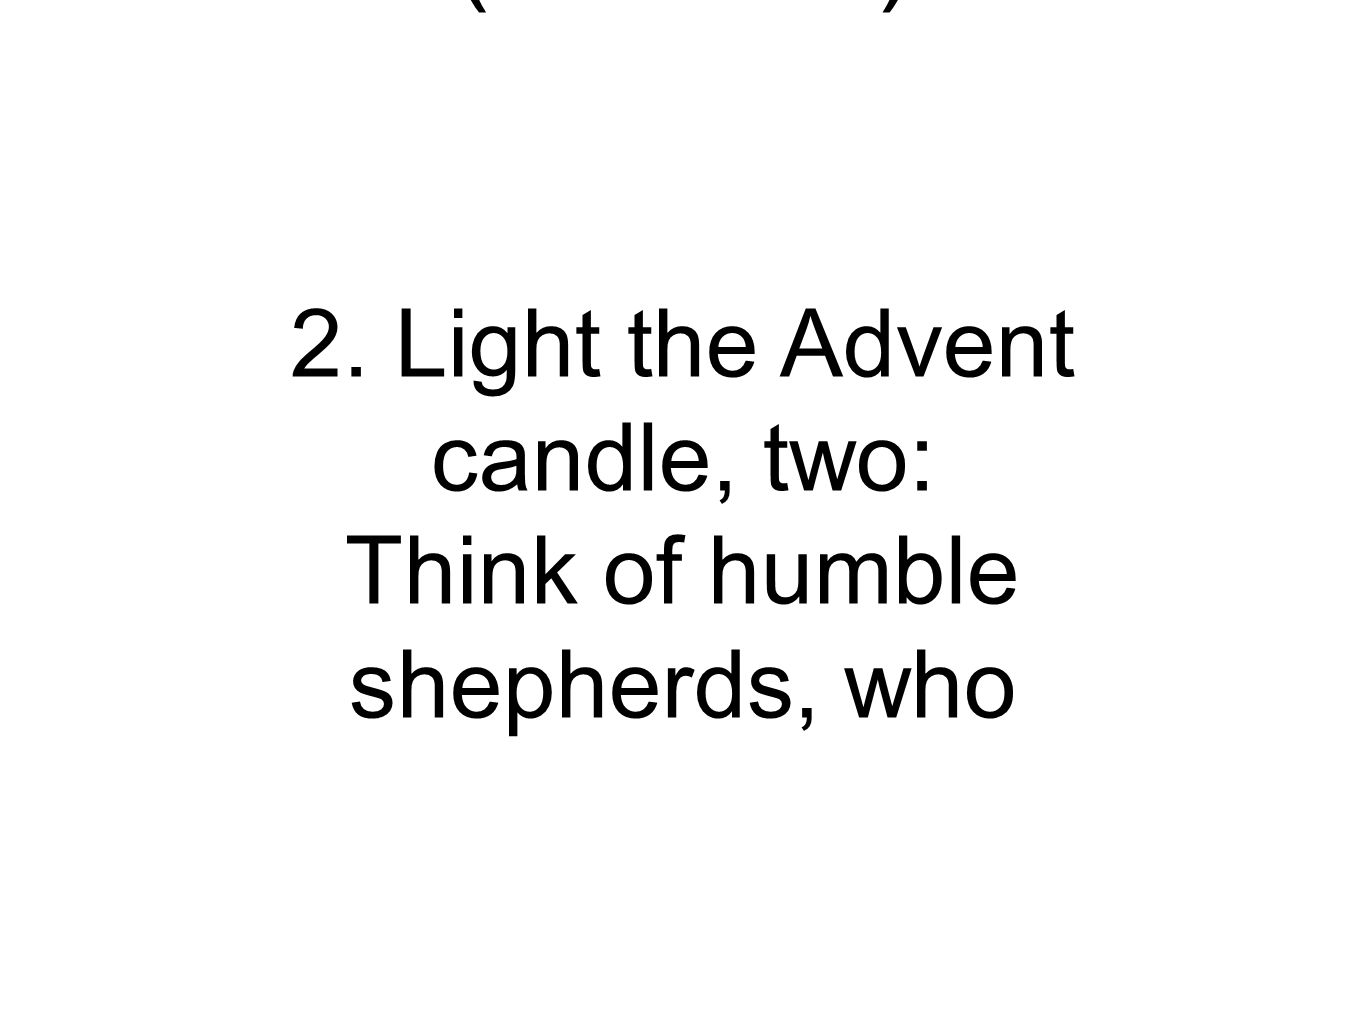 2. Light the Advent candle, two: Think of humble shepherds, who Light the Advent Candle (Verse 2)